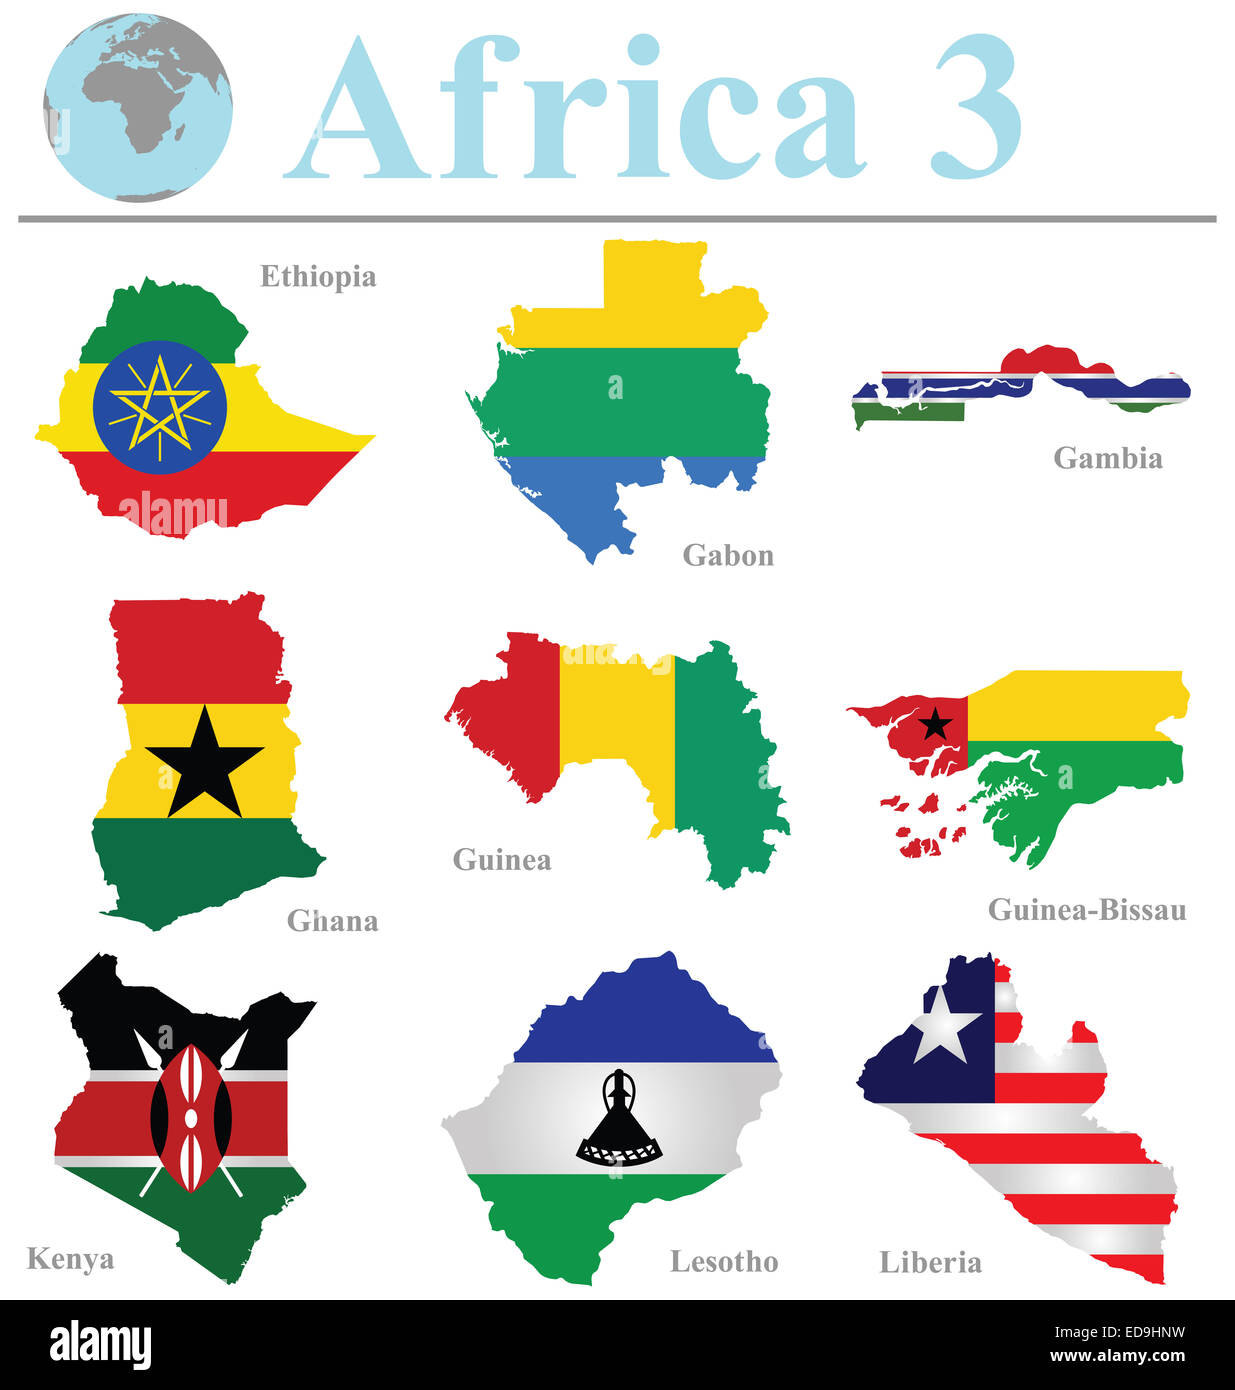 Flags of Africa collection 3 overlaid on outline map isolated on white background - Stock Image